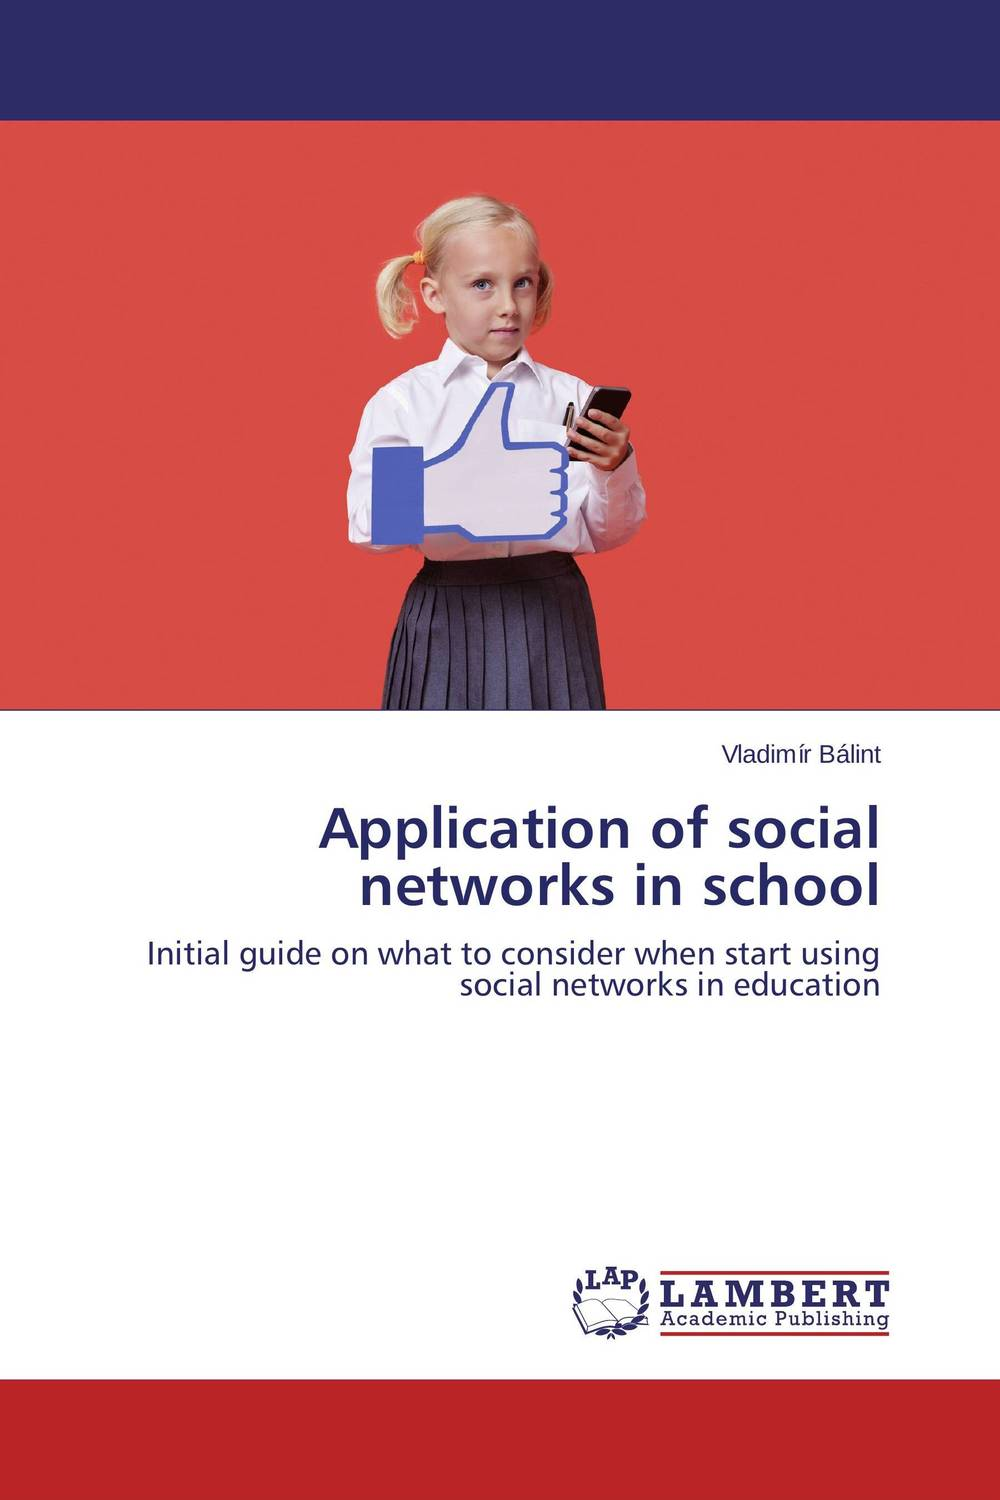 Application of social networks in school mike myatt hacking leadership the 11 gaps every business needs to close and the secrets to closing them quickly